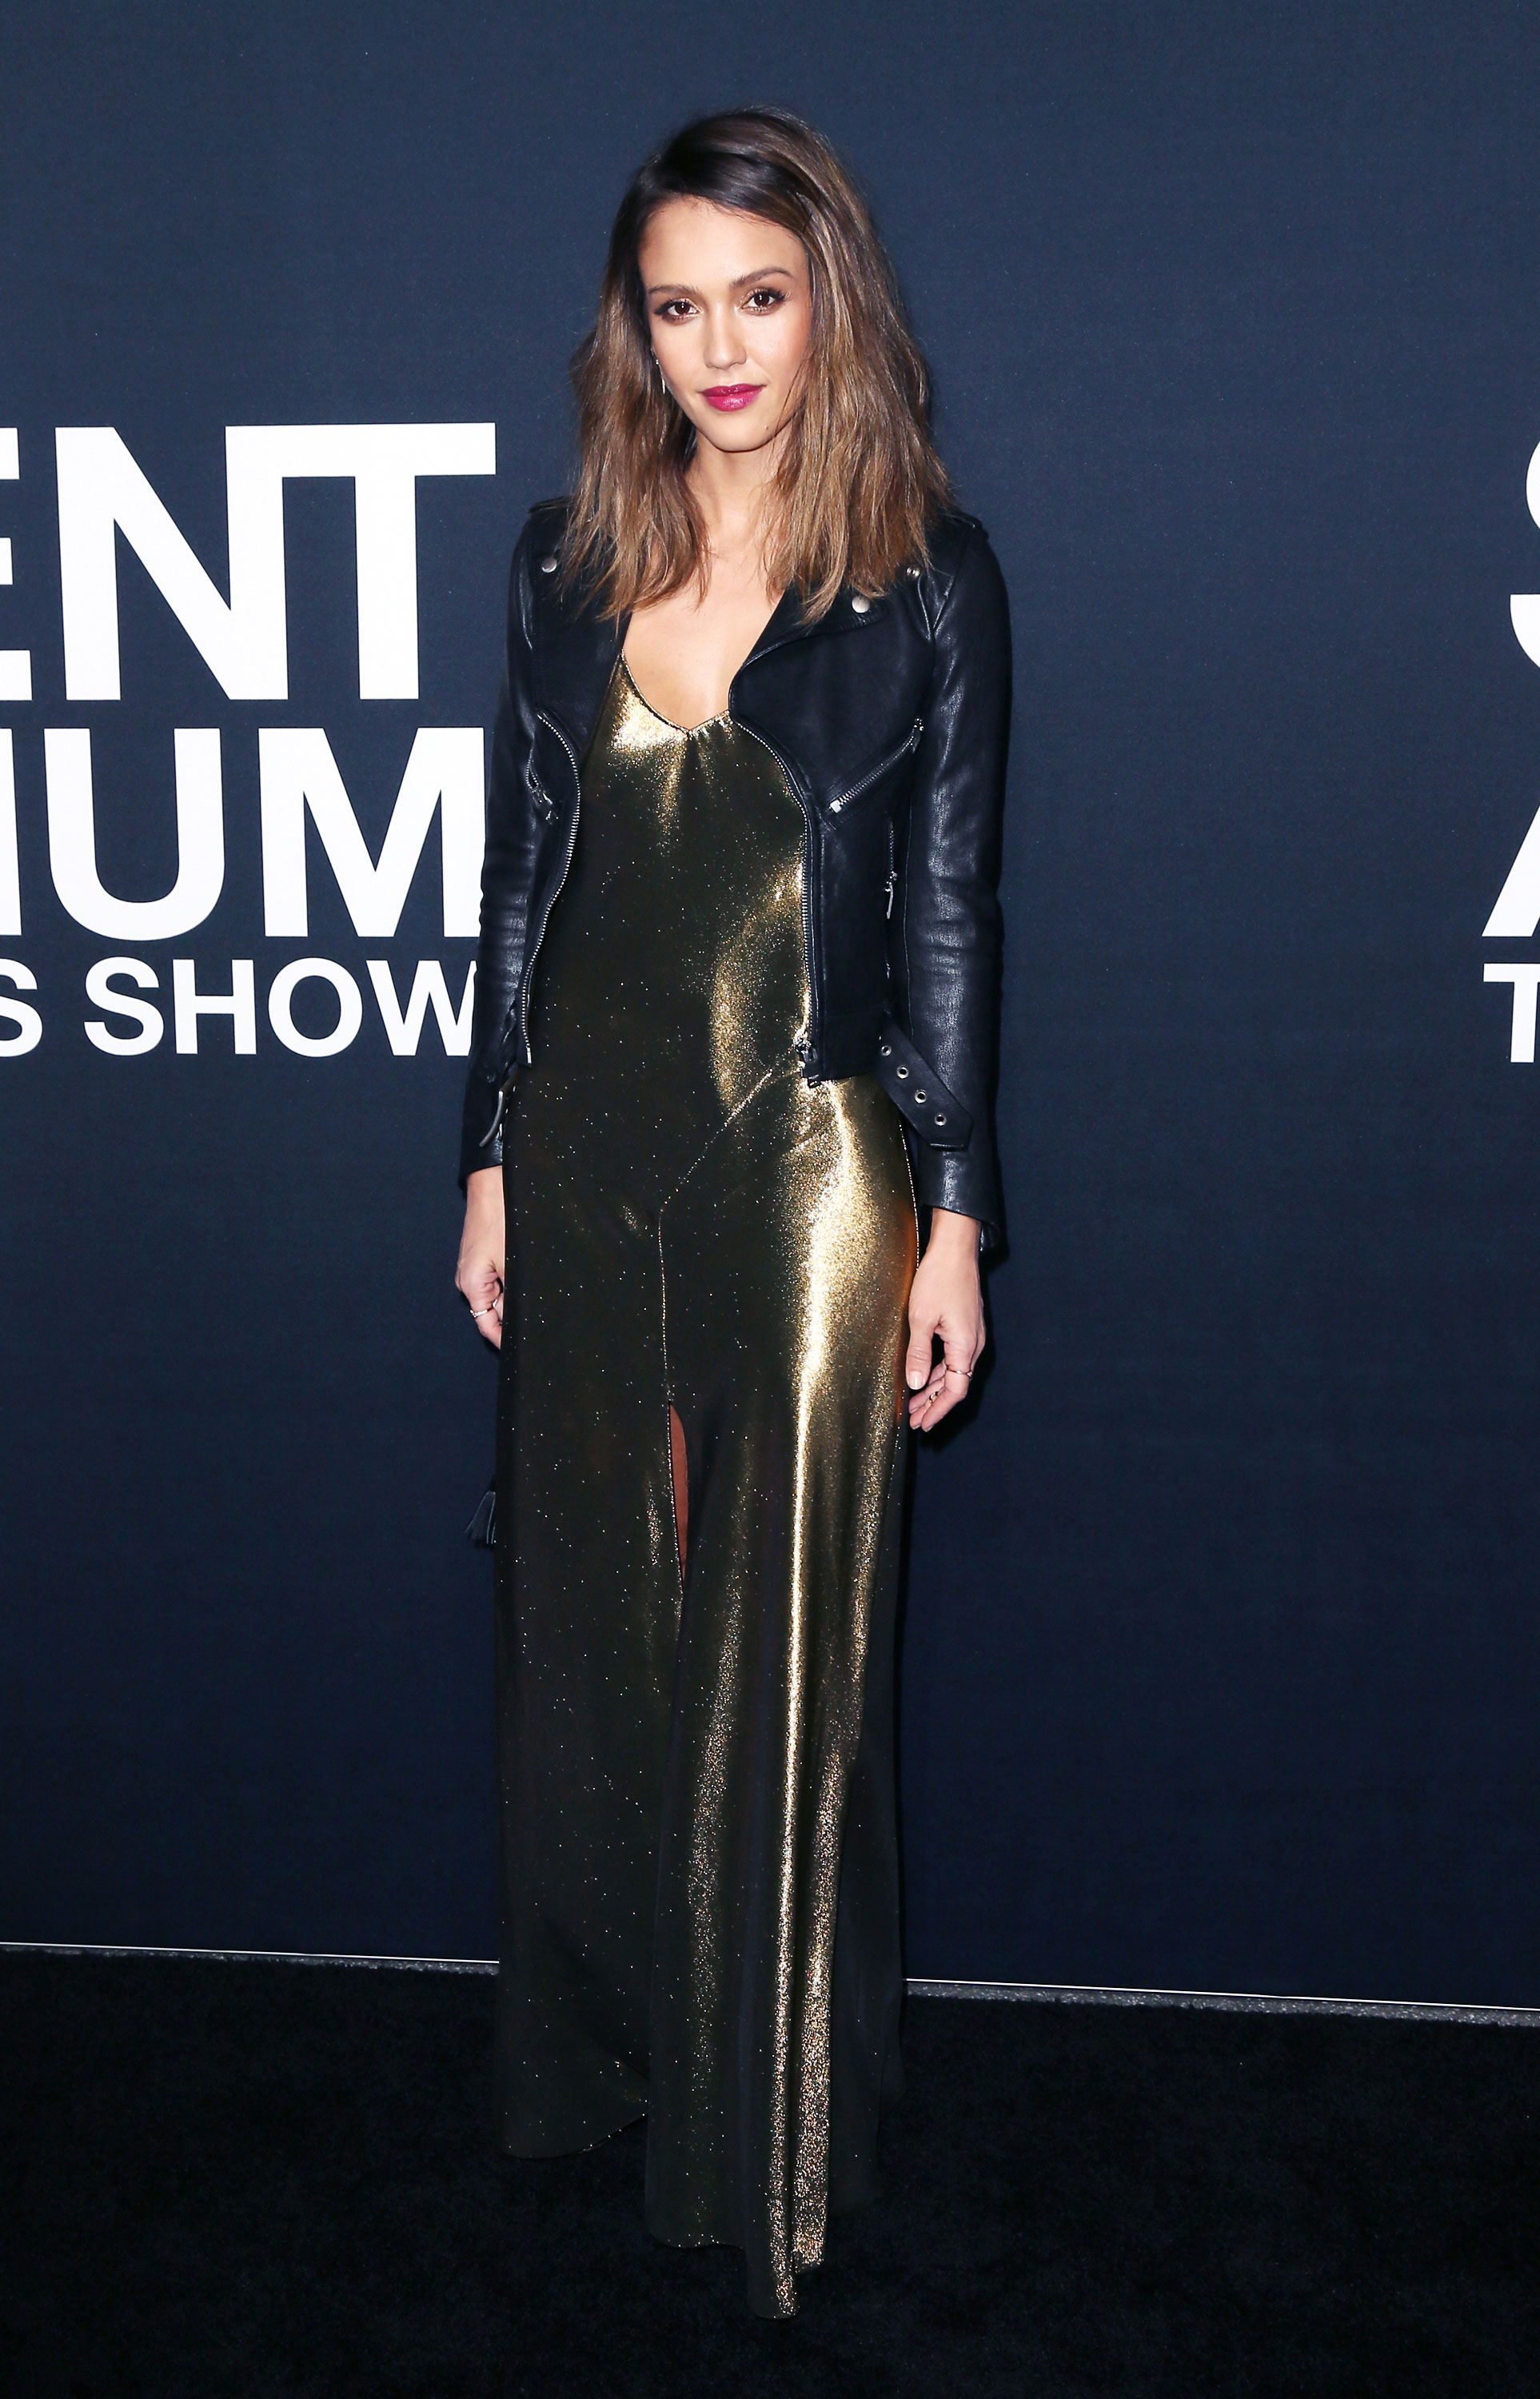 Jessica Alba Pairs A Golden Maxi Dress Edgy Leather Jacket